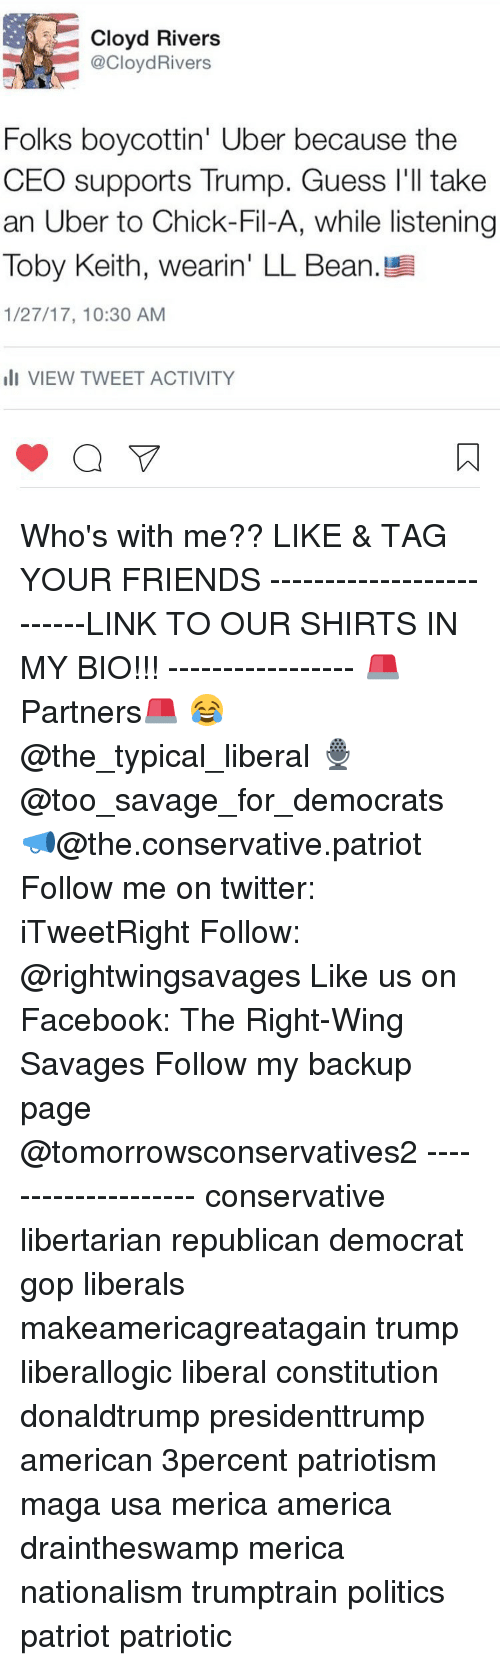 toby keith: Cloyd Rivers  CloydRivers  Folks boycottin' Uber because the  CEO supports Trump. Guess I'll take  an Uber to Chick-Fil-A, while listening  Toby Keith, wearin' LL Bean. Bl  1/27/17, 10:30 AM  III VIEW TWEET ACTIVITY Who's with me?? LIKE & TAG YOUR FRIENDS -------------------------LINK TO OUR SHIRTS IN MY BIO!!! ----------------- 🚨Partners🚨 😂@the_typical_liberal 🎙@too_savage_for_democrats 📣@the.conservative.patriot Follow me on twitter: iTweetRight Follow: @rightwingsavages Like us on Facebook: The Right-Wing Savages Follow my backup page @tomorrowsconservatives2 -------------------- conservative libertarian republican democrat gop liberals makeamericagreatagain trump liberallogic liberal constitution donaldtrump presidenttrump american 3percent patriotism maga usa merica america draintheswamp merica nationalism trumptrain politics patriot patriotic